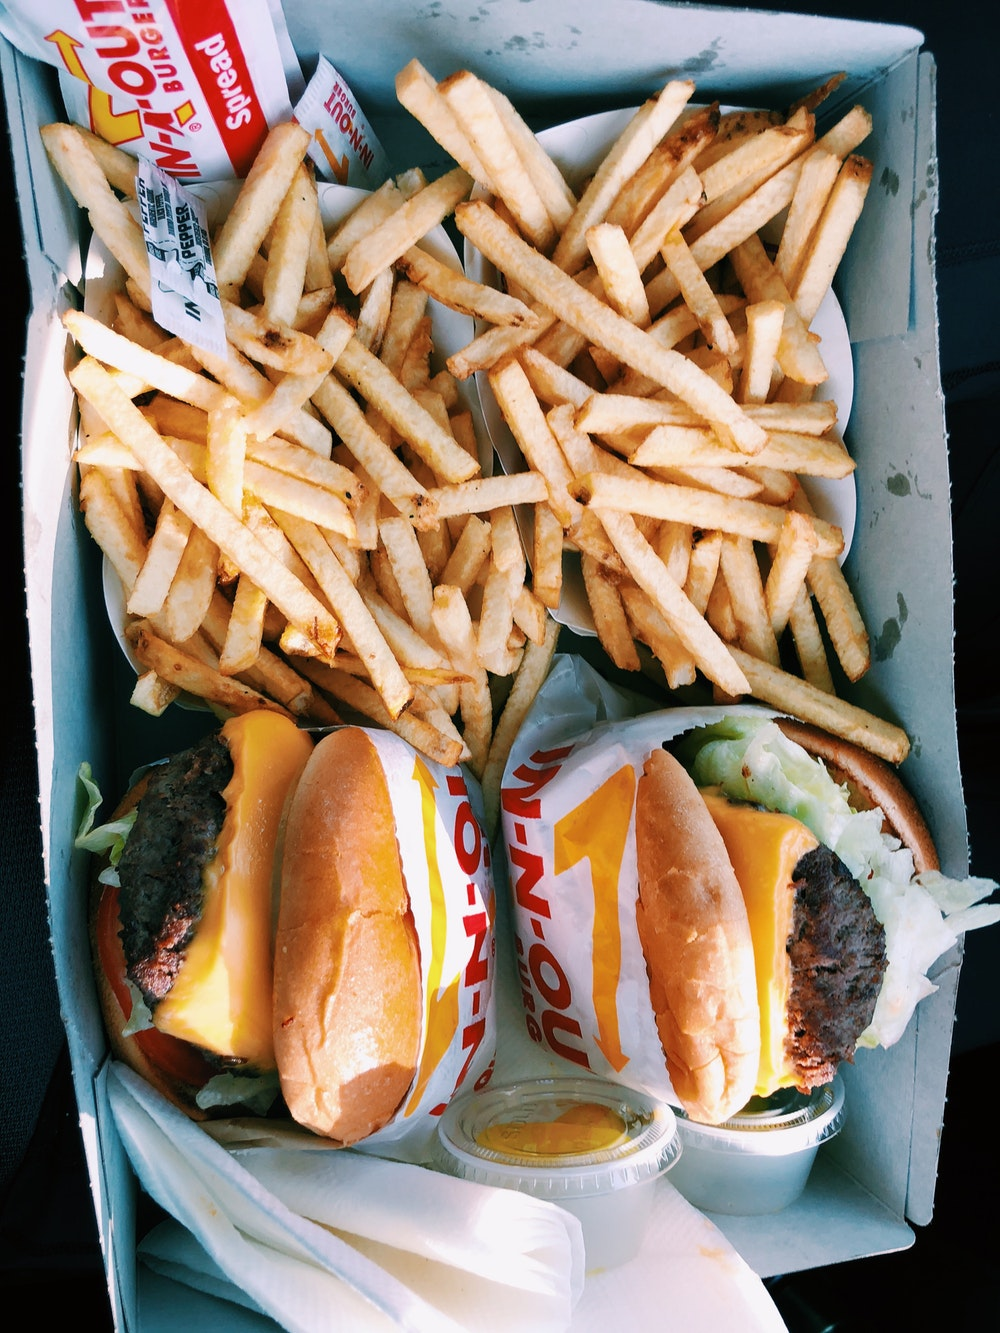 100 Fast Food Images Download Pictures on Unsplash 1000x1333